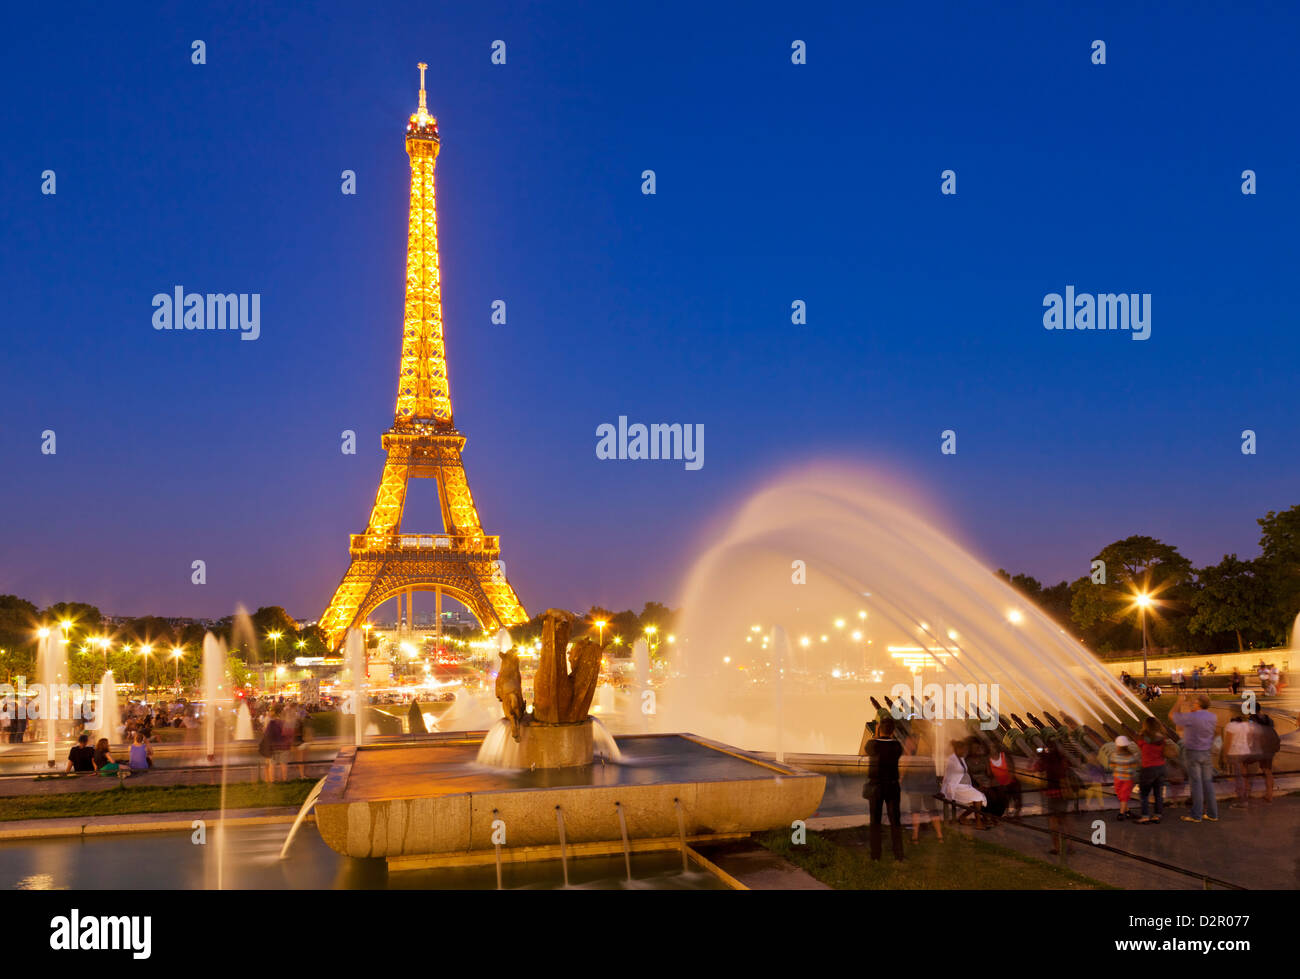 Eiffel Tower and the Trocadero Fountains at night, Paris, France, Europe - Stock Image